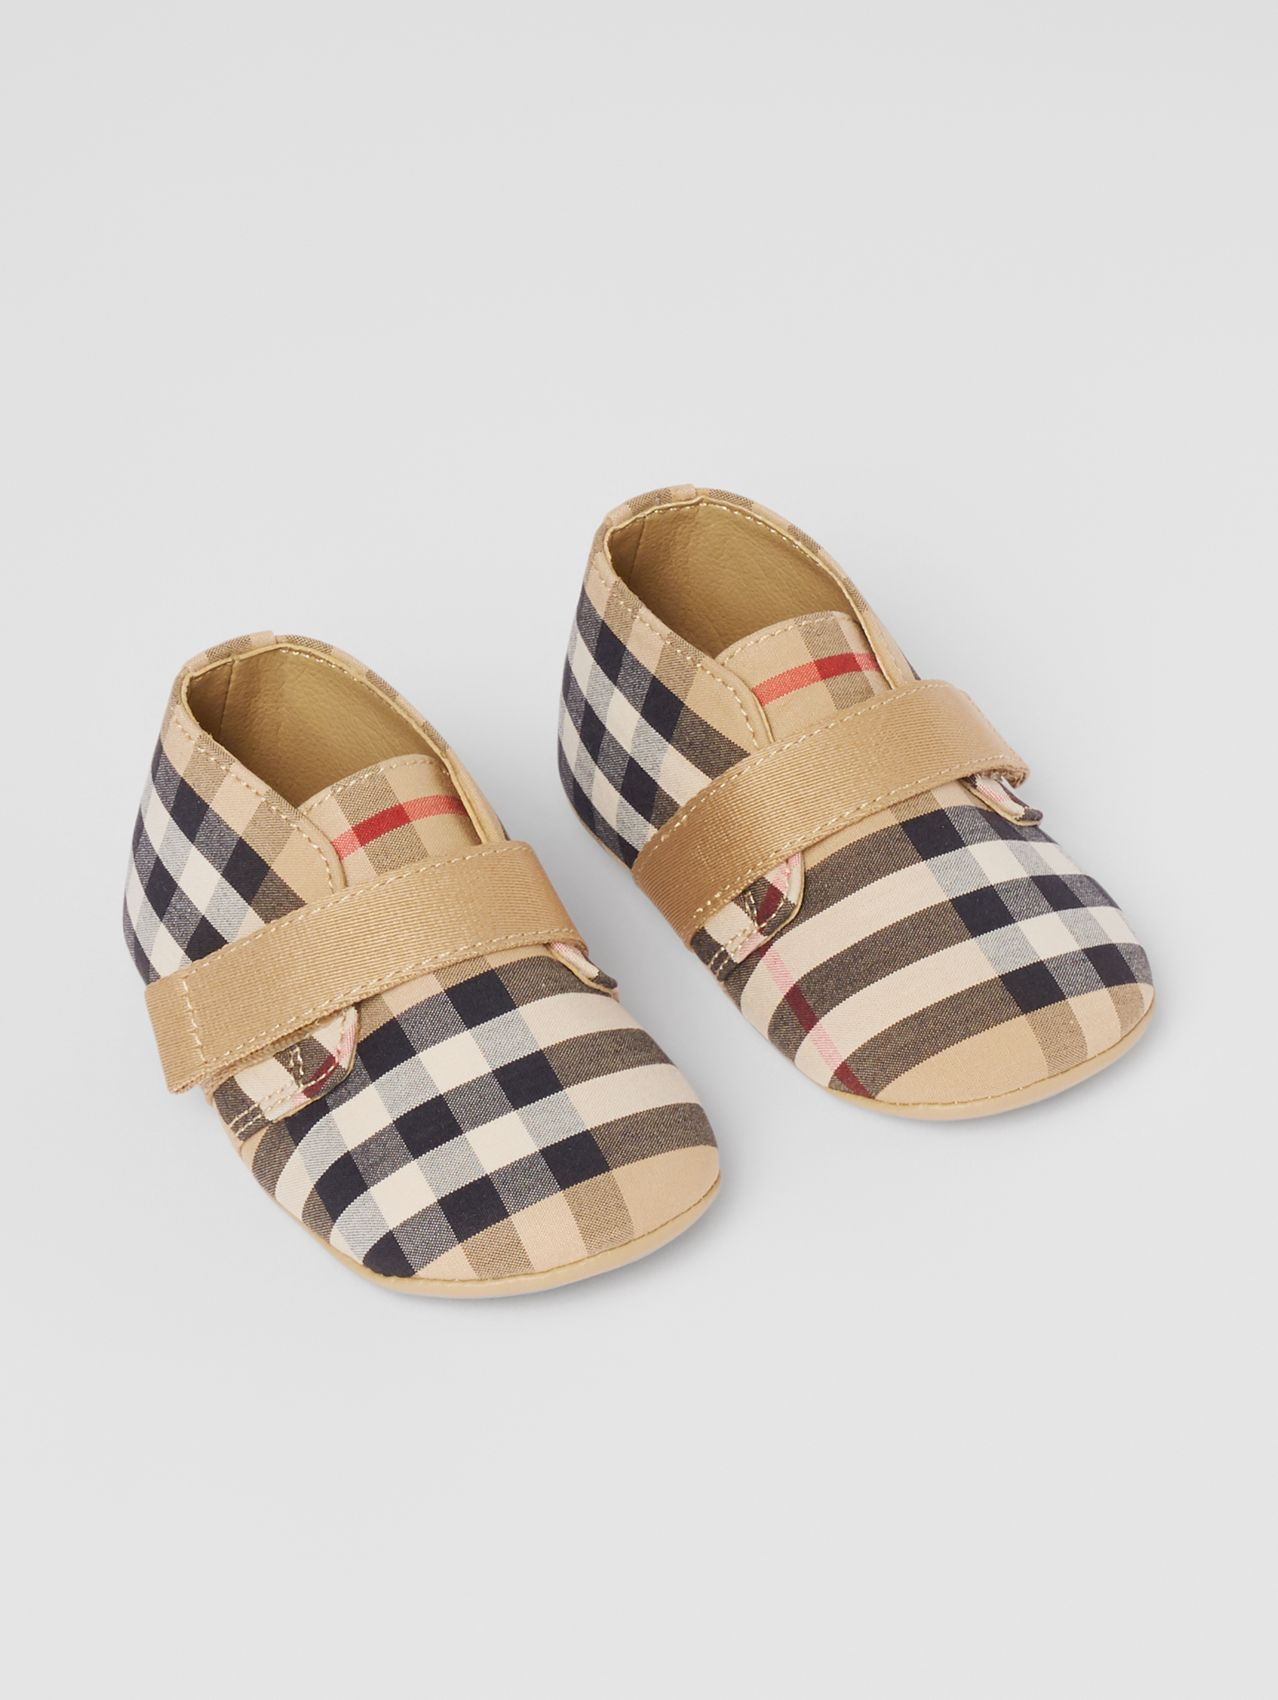 Chaussons en coton Vintage check in Beige D'archive